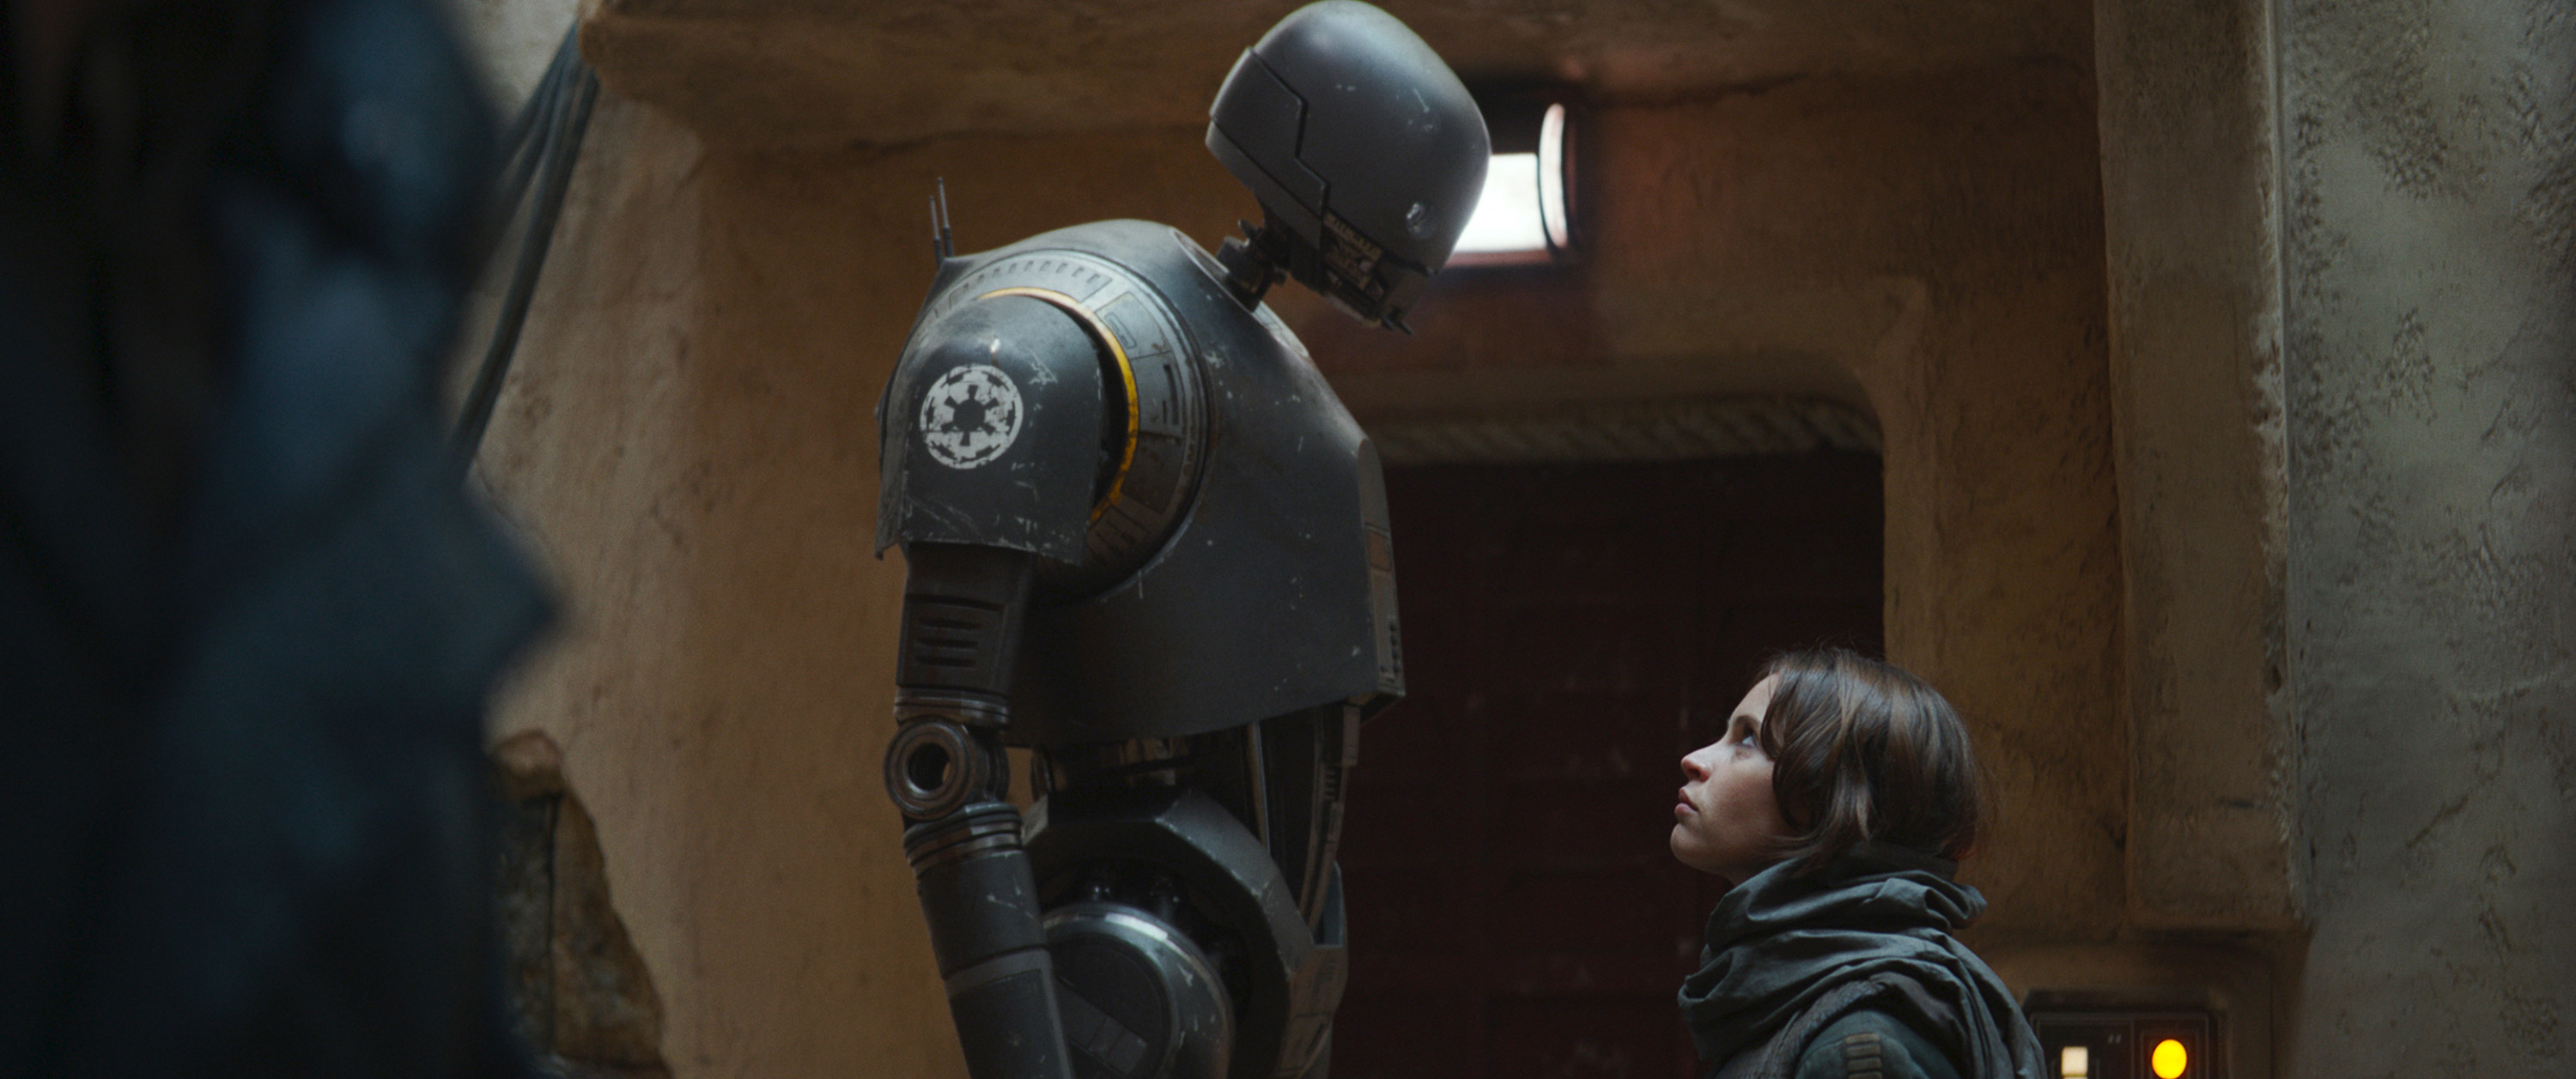 K-2SO and Jyn Erso looking at each other